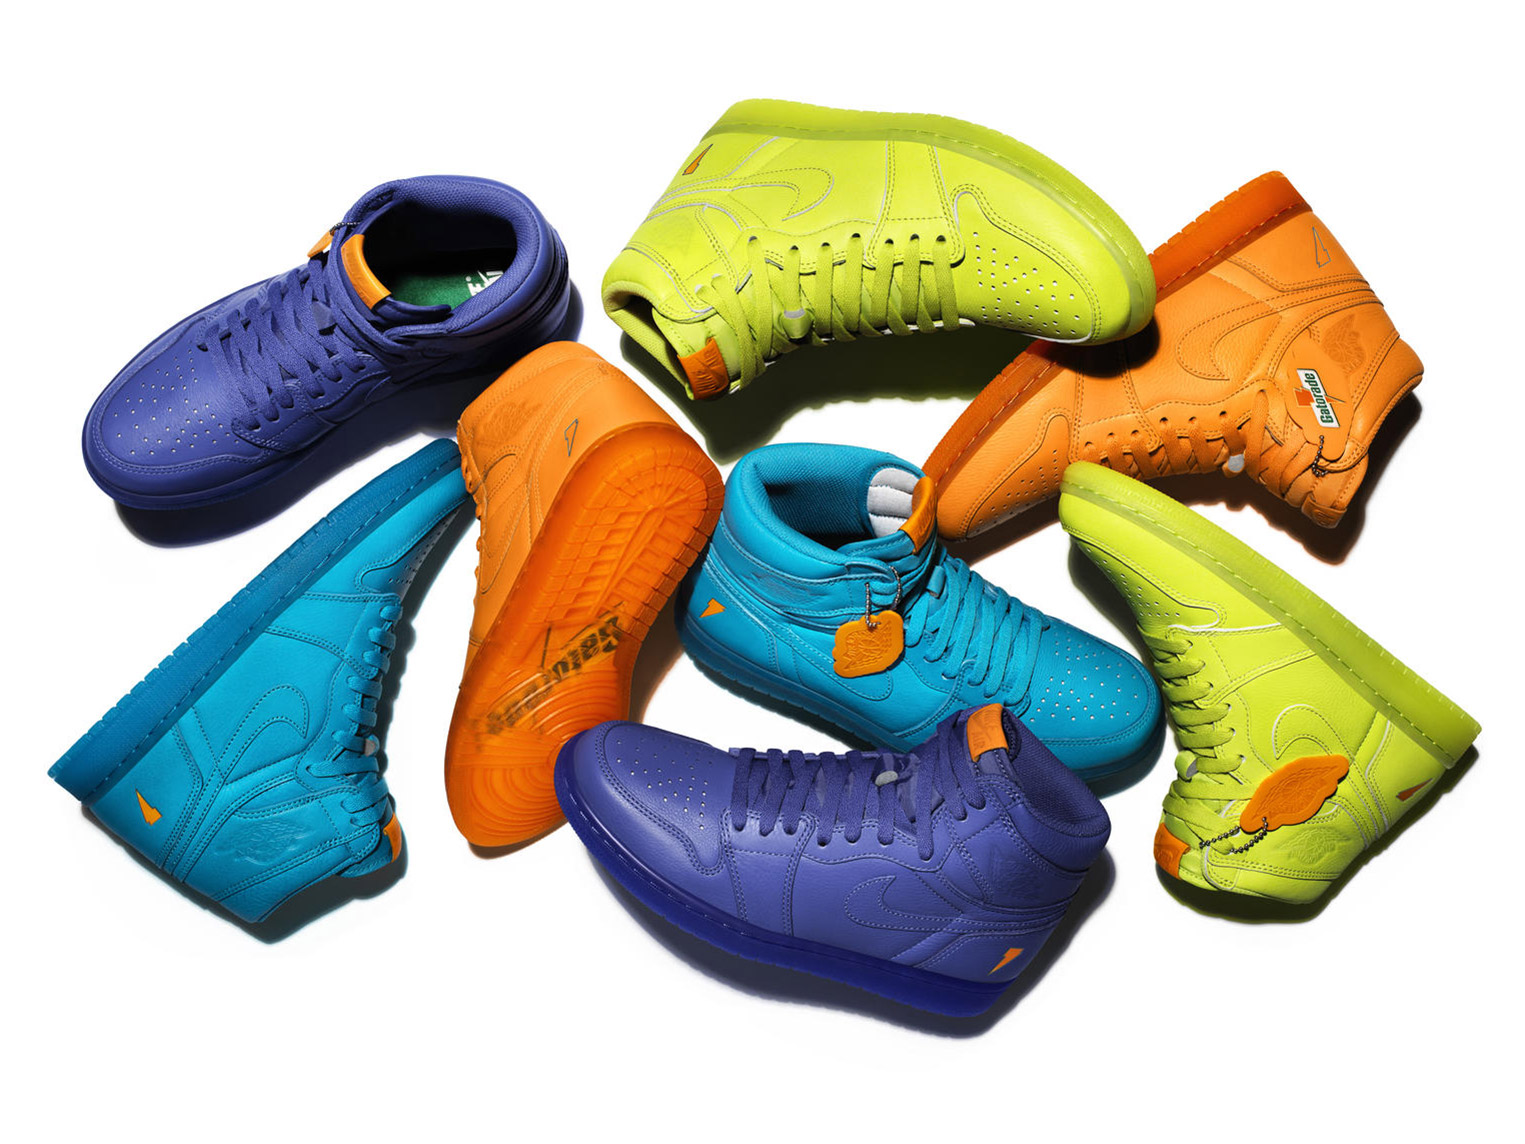 Nike S Gatorade Air Jordans Refresh The Classic Shoe Line With